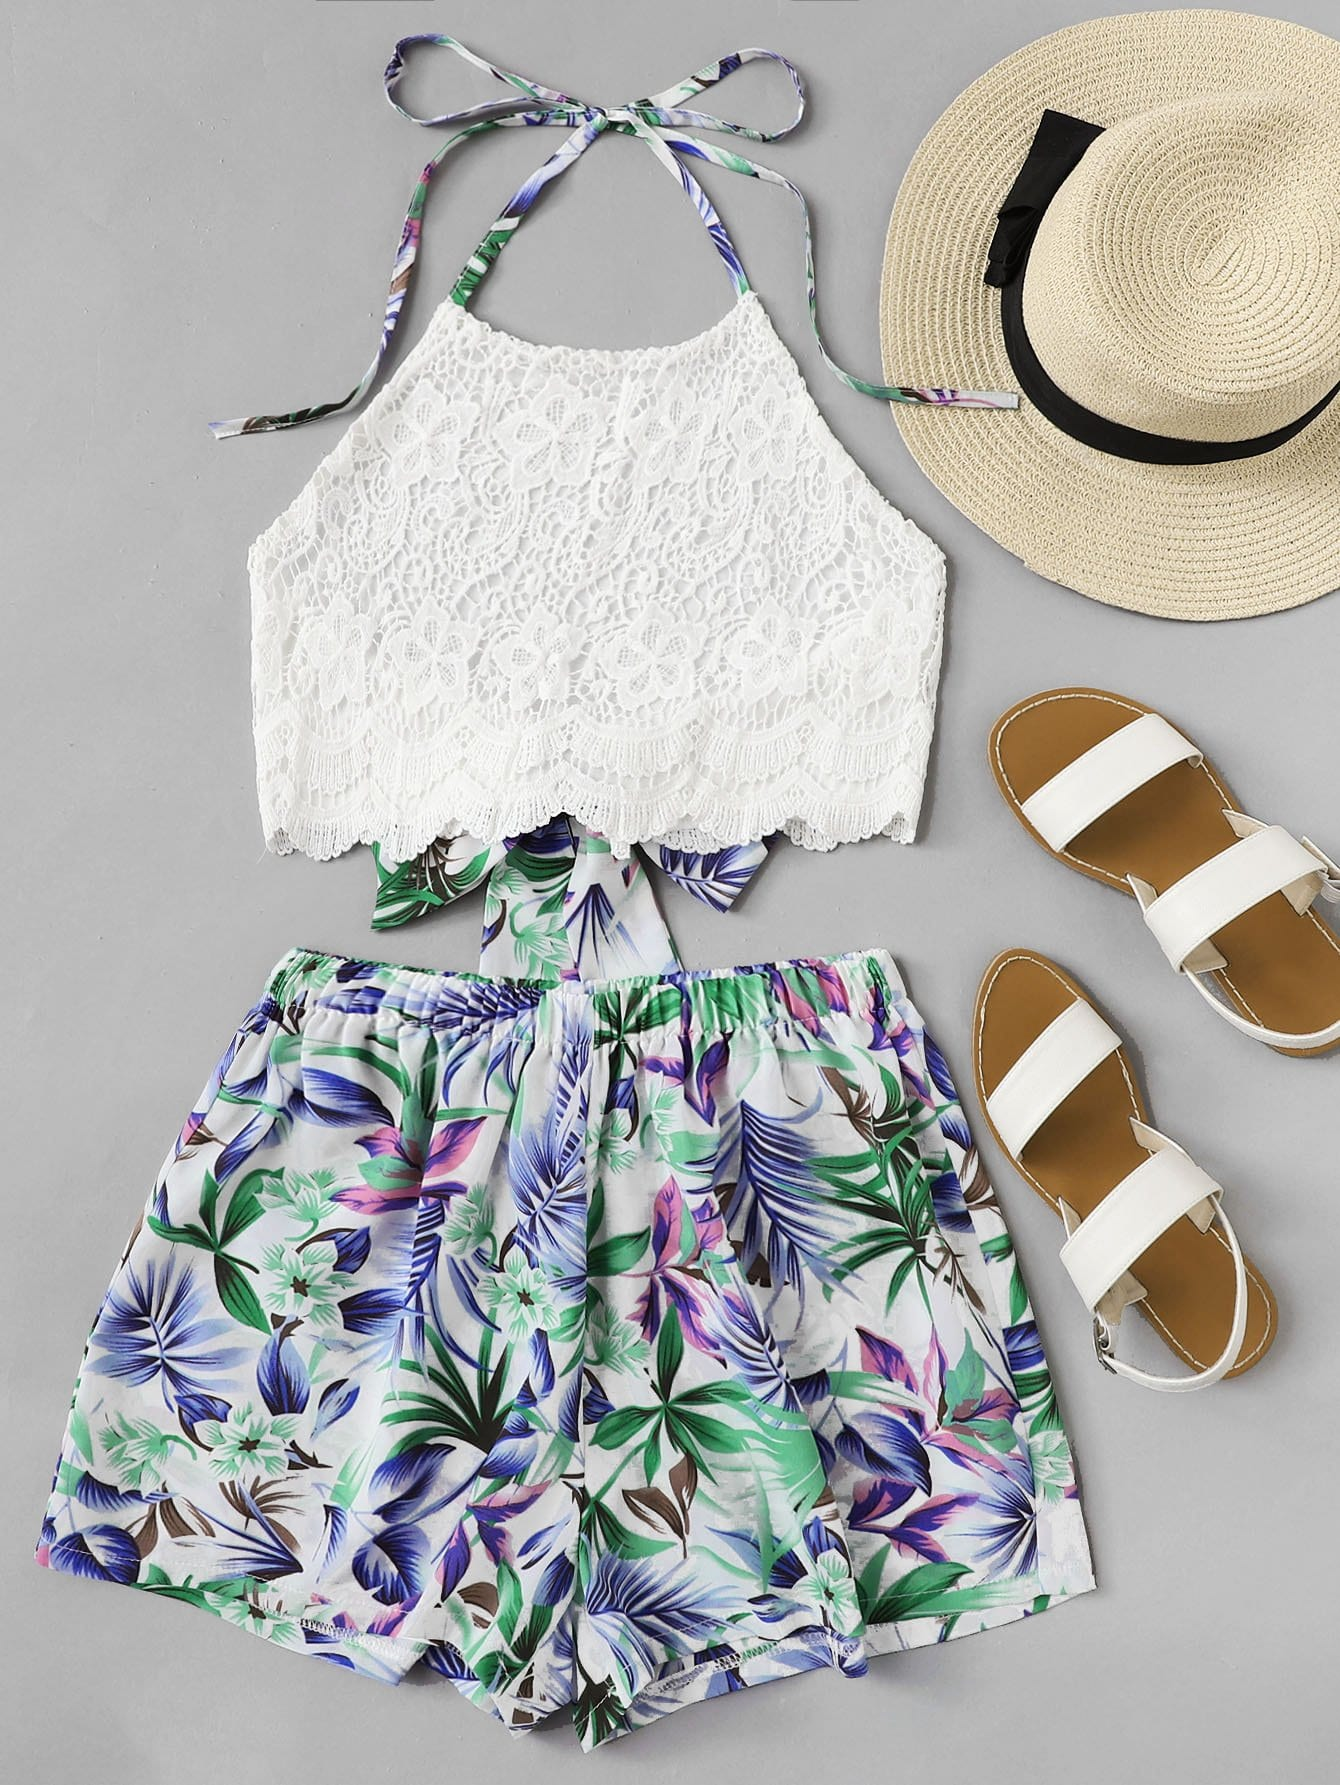 Lace Halter Top With Floral Print Shorts floral applique bowknot top with shorts